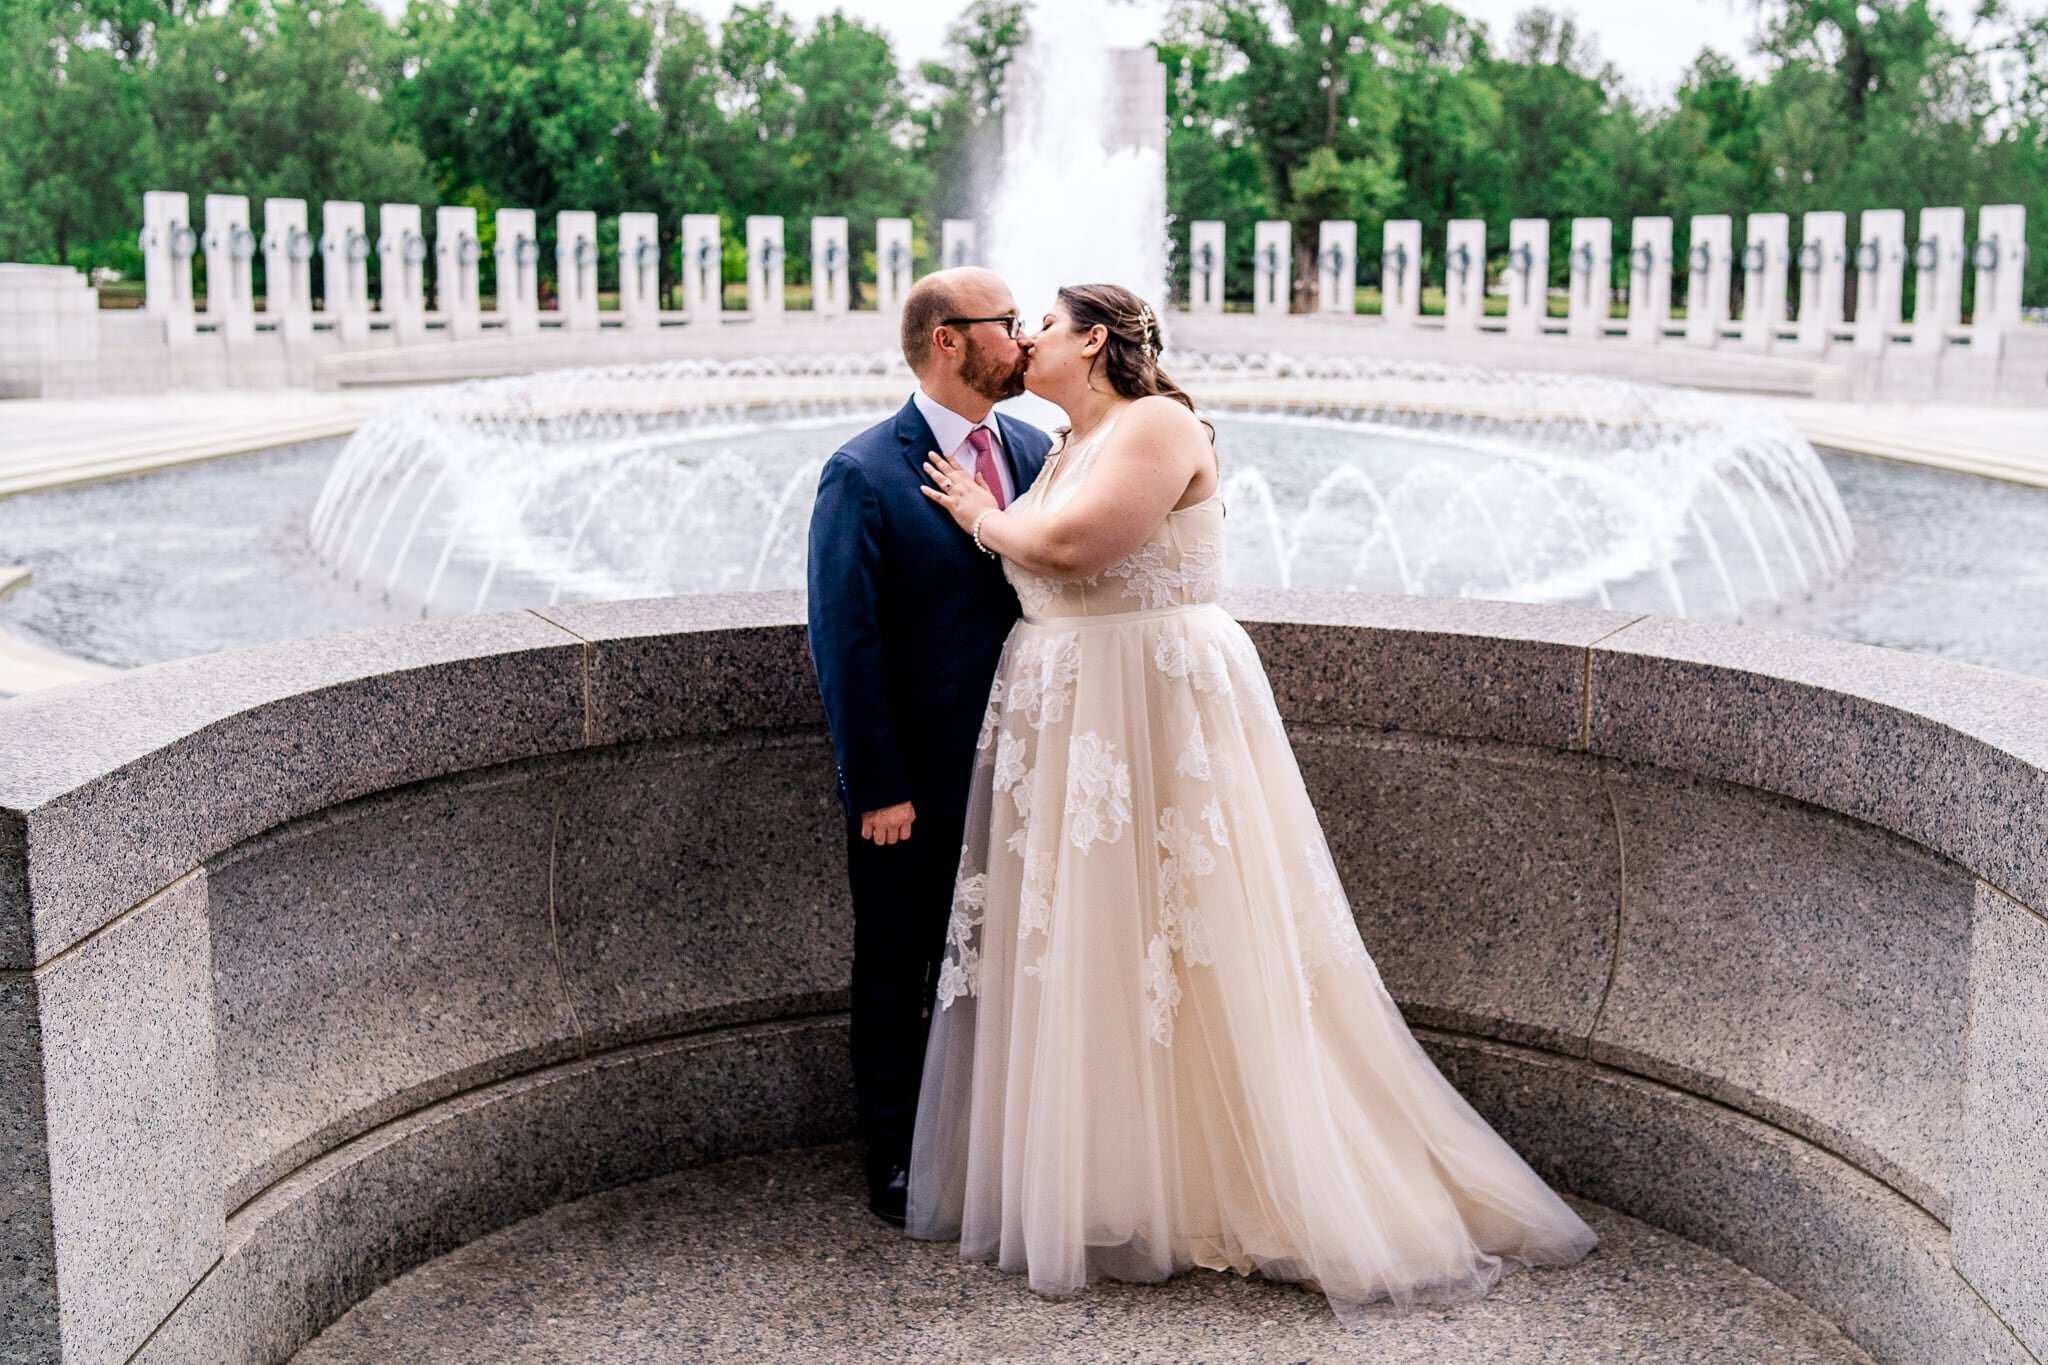 A bride and groom share a kiss on their fall wedding day at the WWII Memorial in Washington, DC